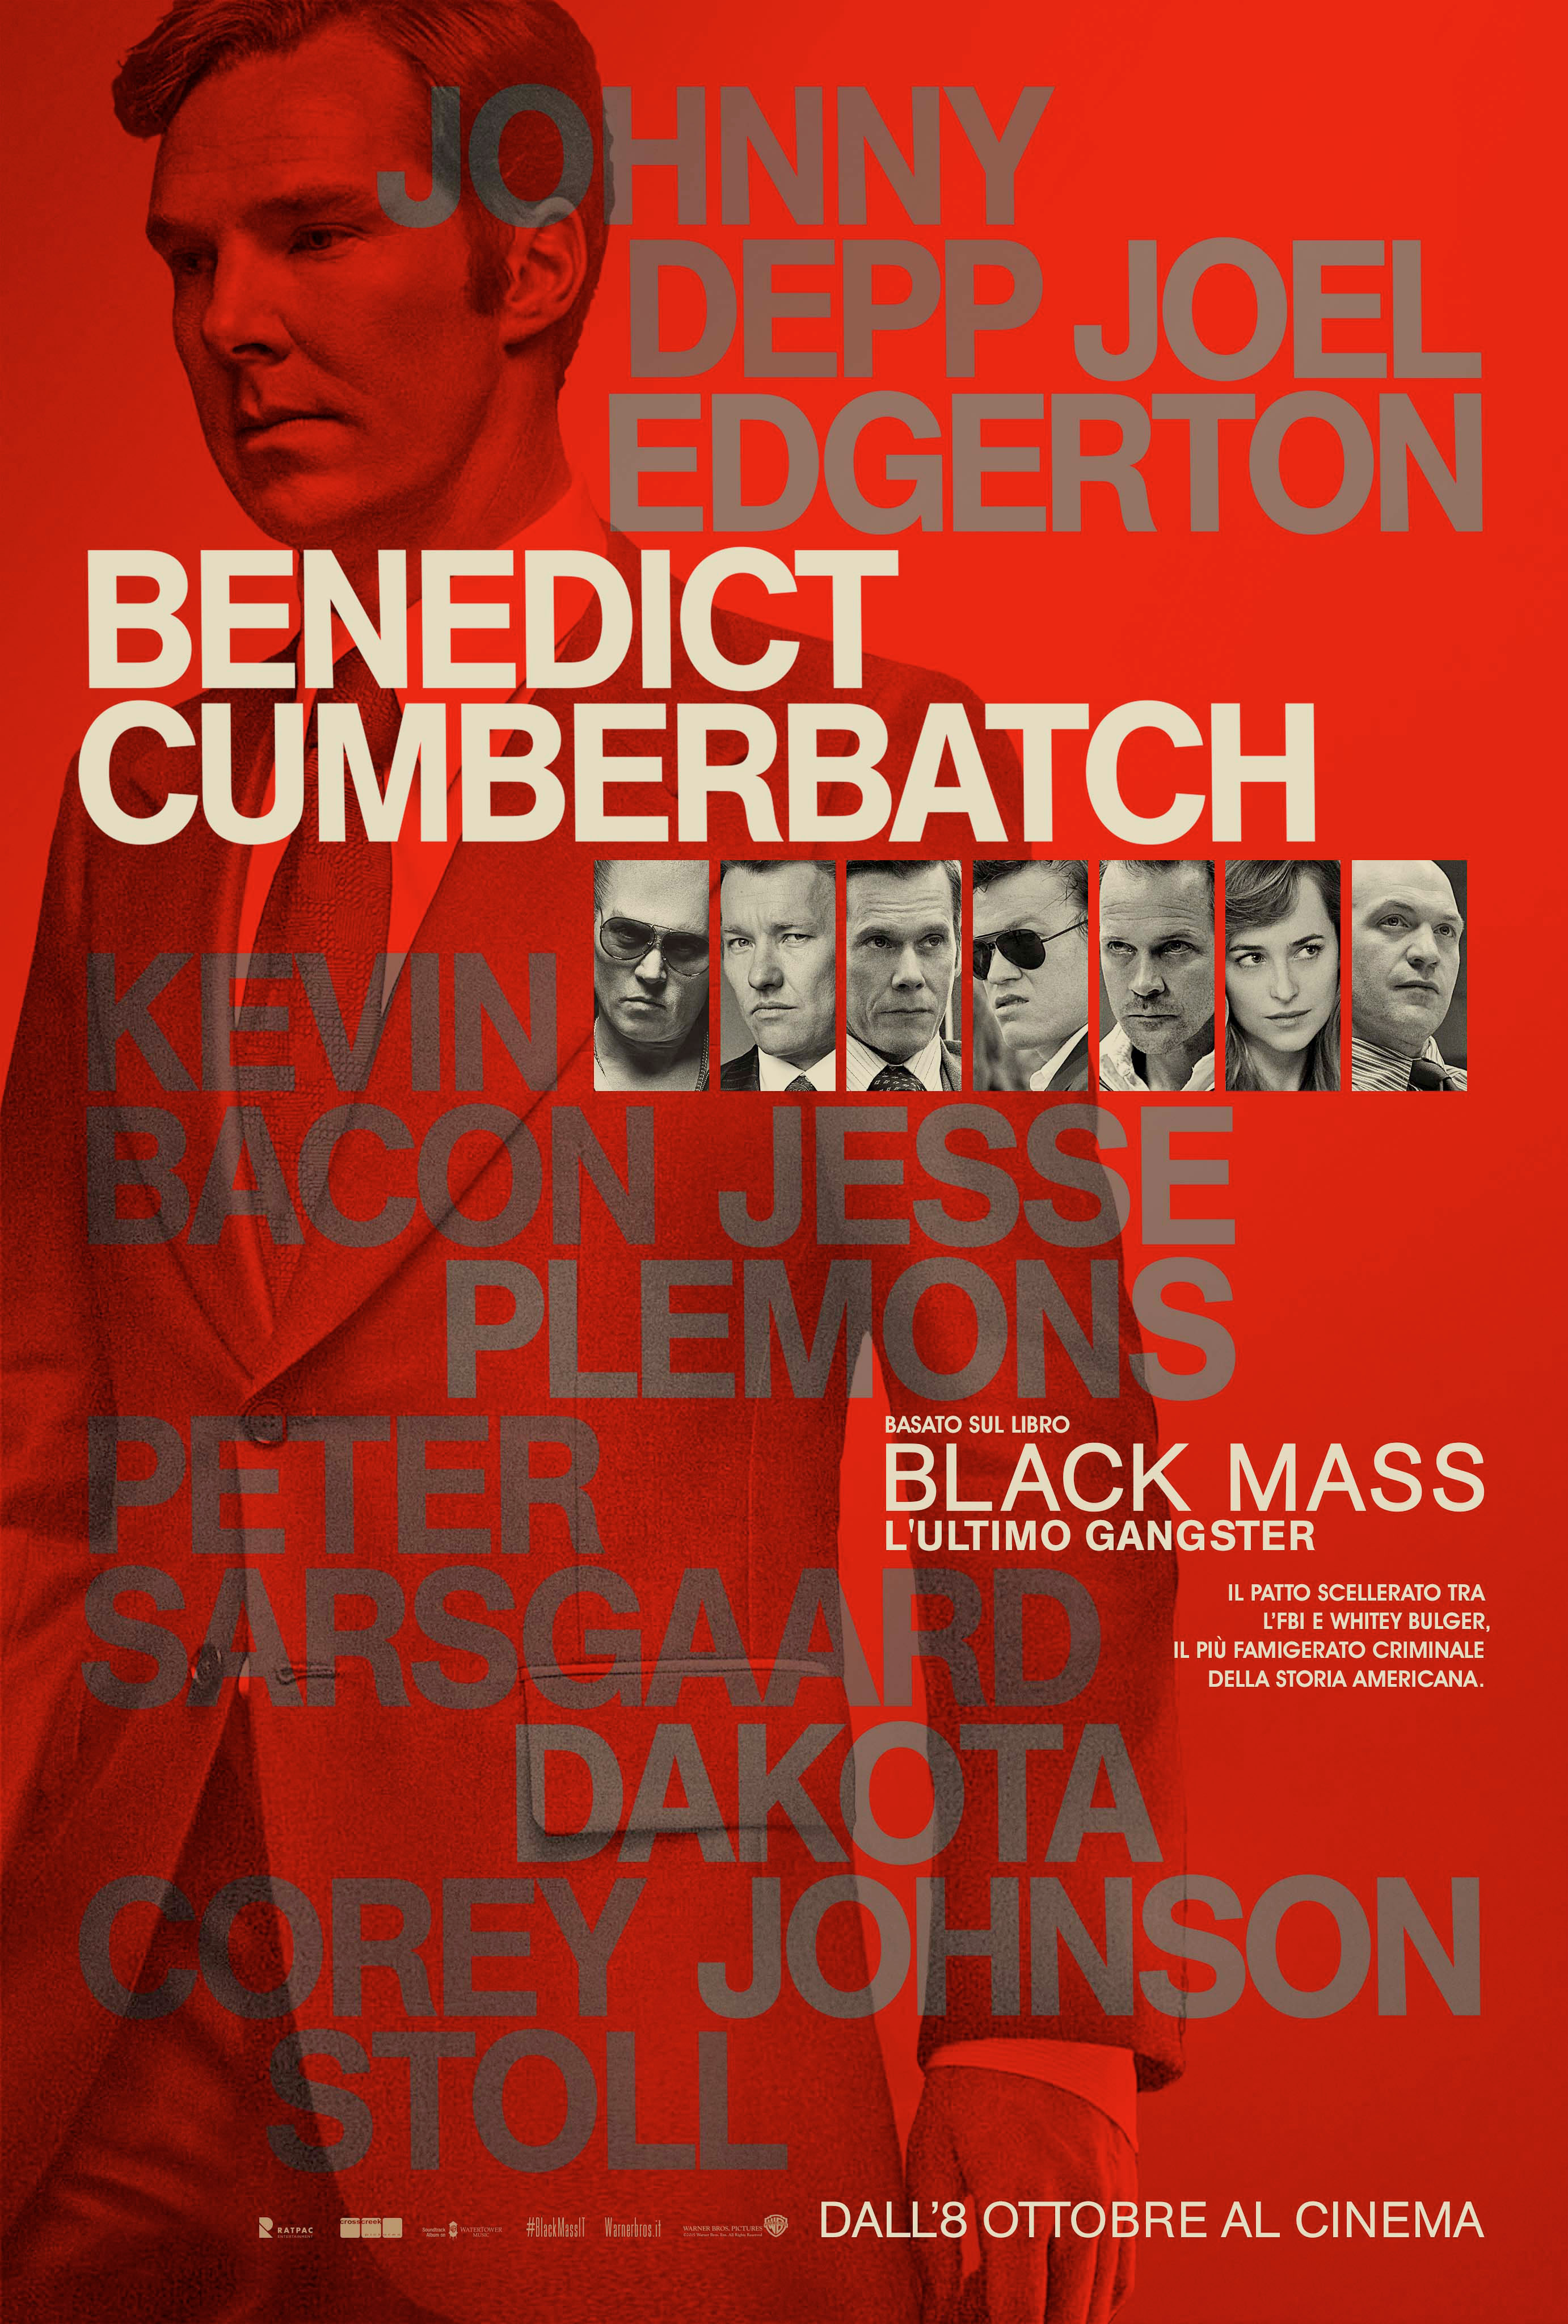 Black Mass - L'ultimo gangster: il character poster di Benedict Cumberbatch